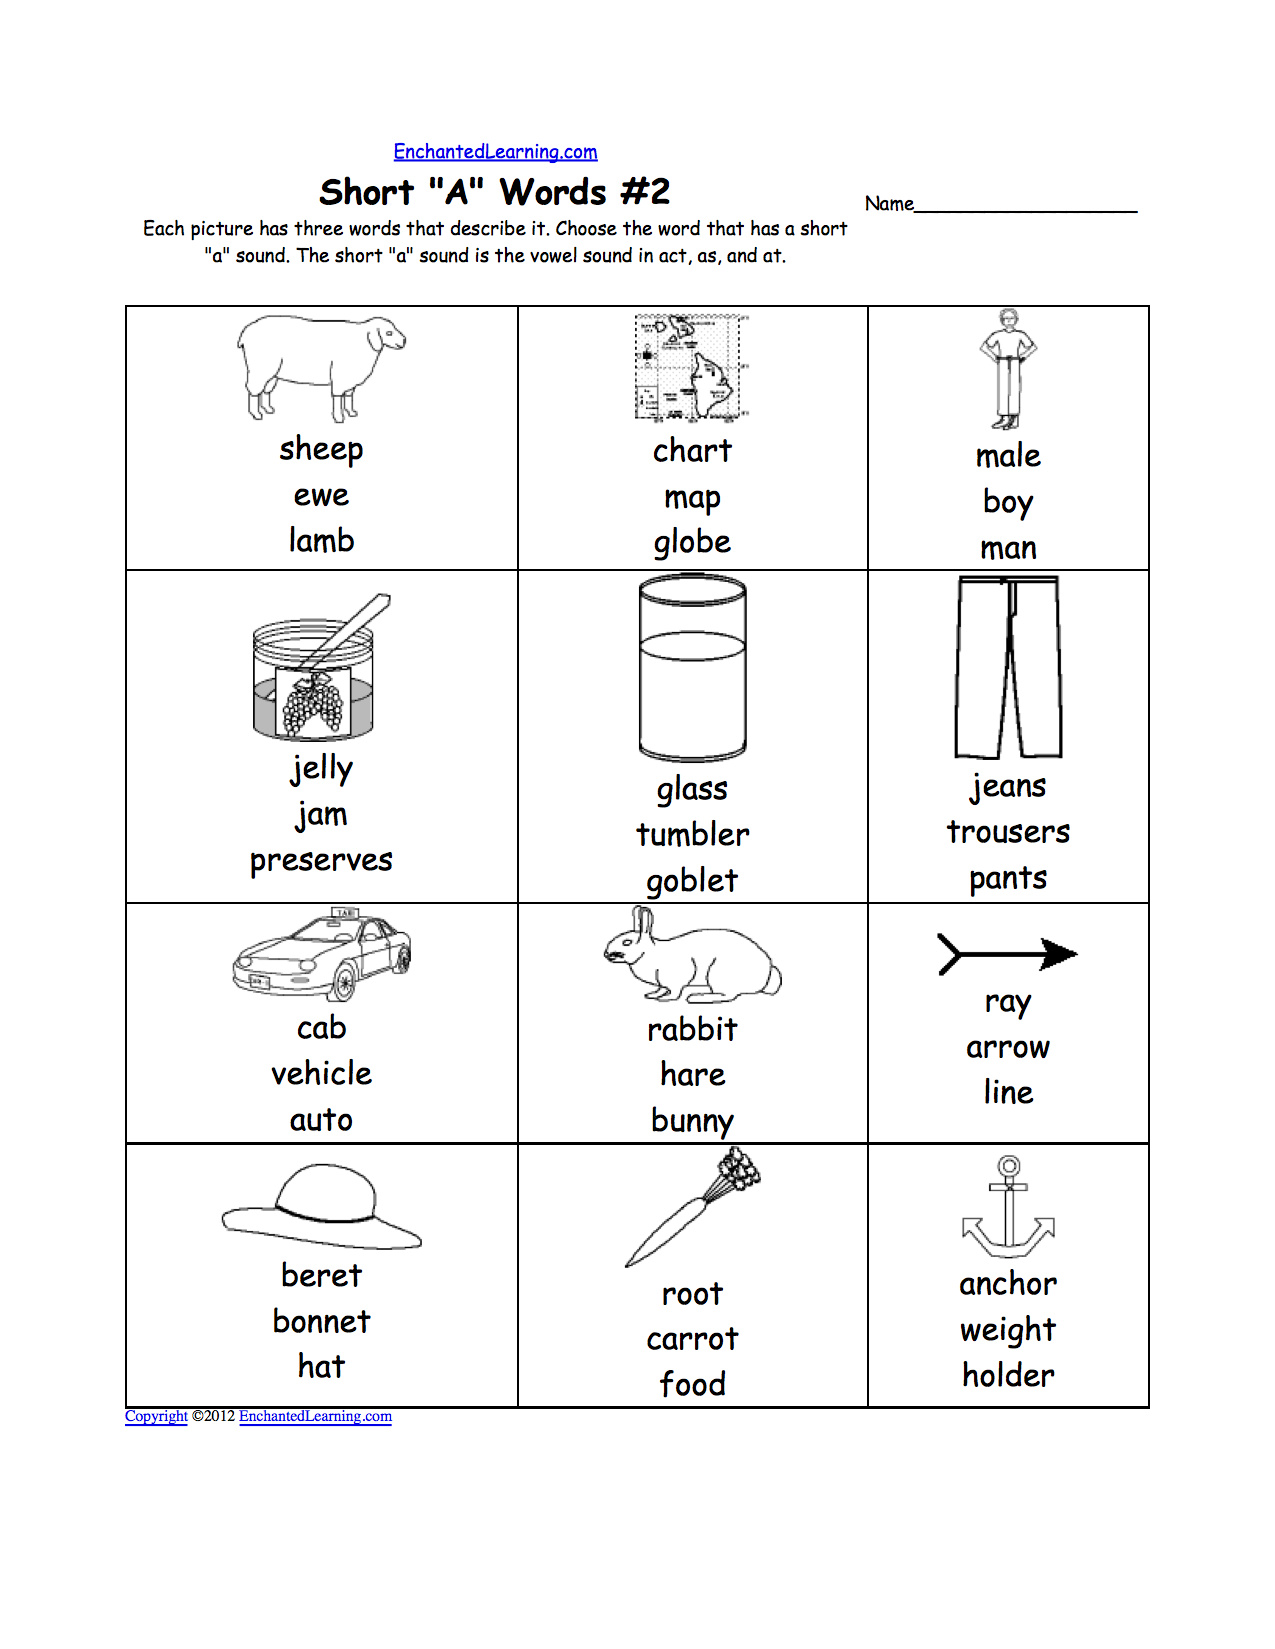 math worksheet : short a alphabet activities at enchantedlearning  : Short I Worksheets For Kindergarten